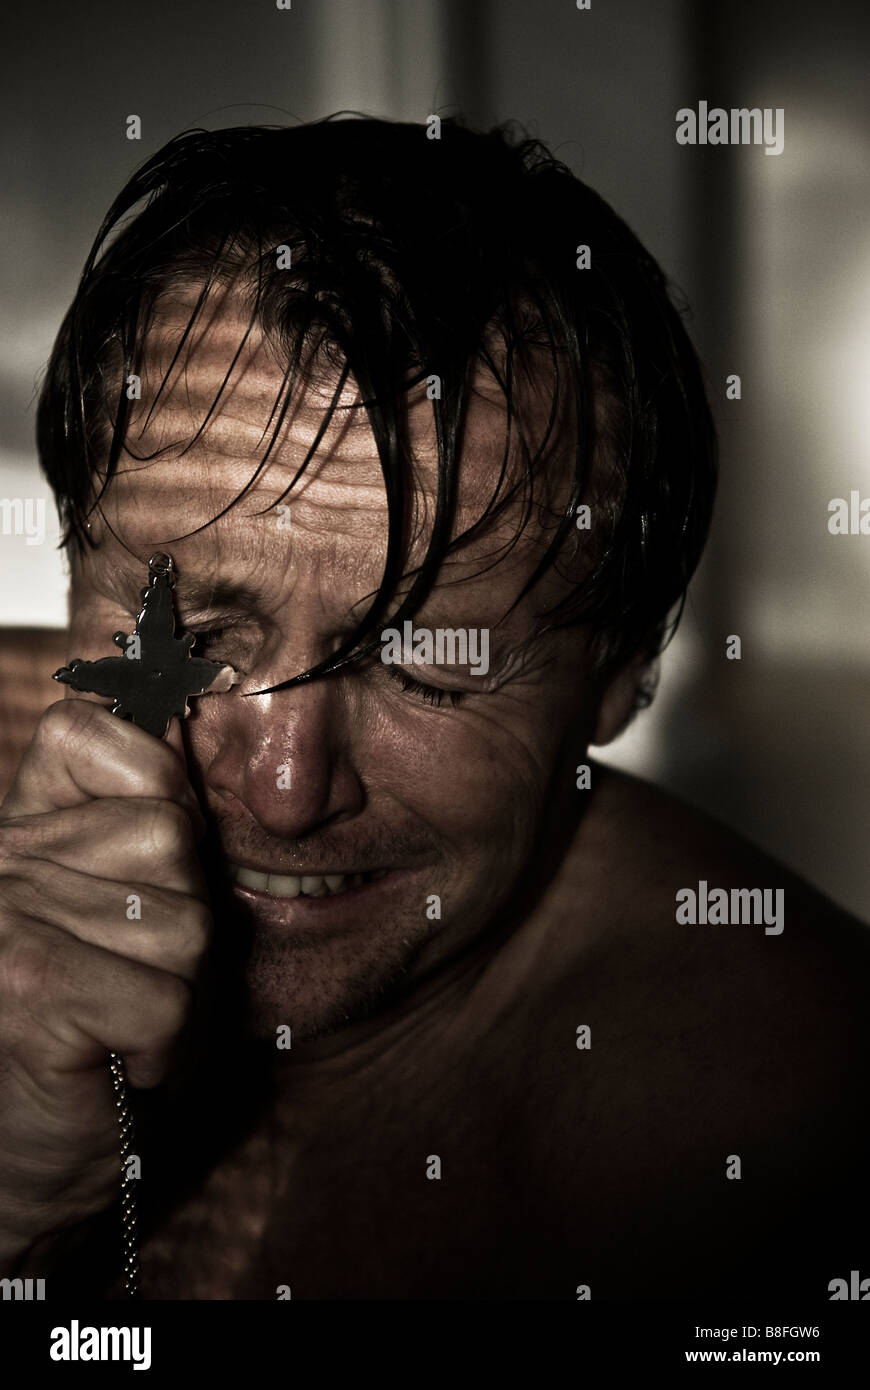 An extremely distressed and emotional man is sobbing as he holds his crucifix close to his face in hope. - Stock Image